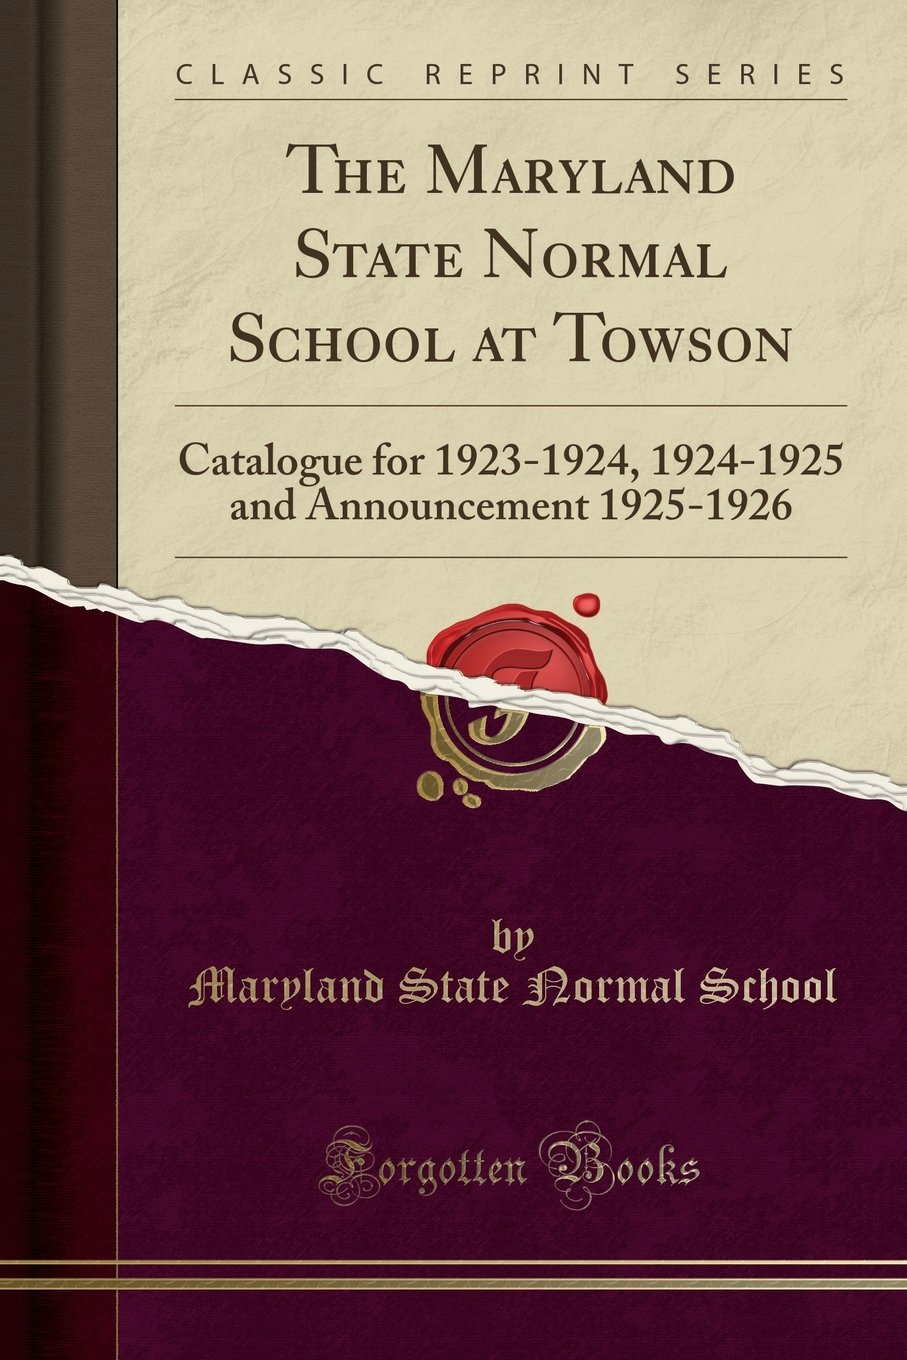 Read Online The Maryland State Normal School at Towson: Catalogue for 1923-1924, 1924-1925 and Announcement 1925-1926 (Classic Reprint) ebook